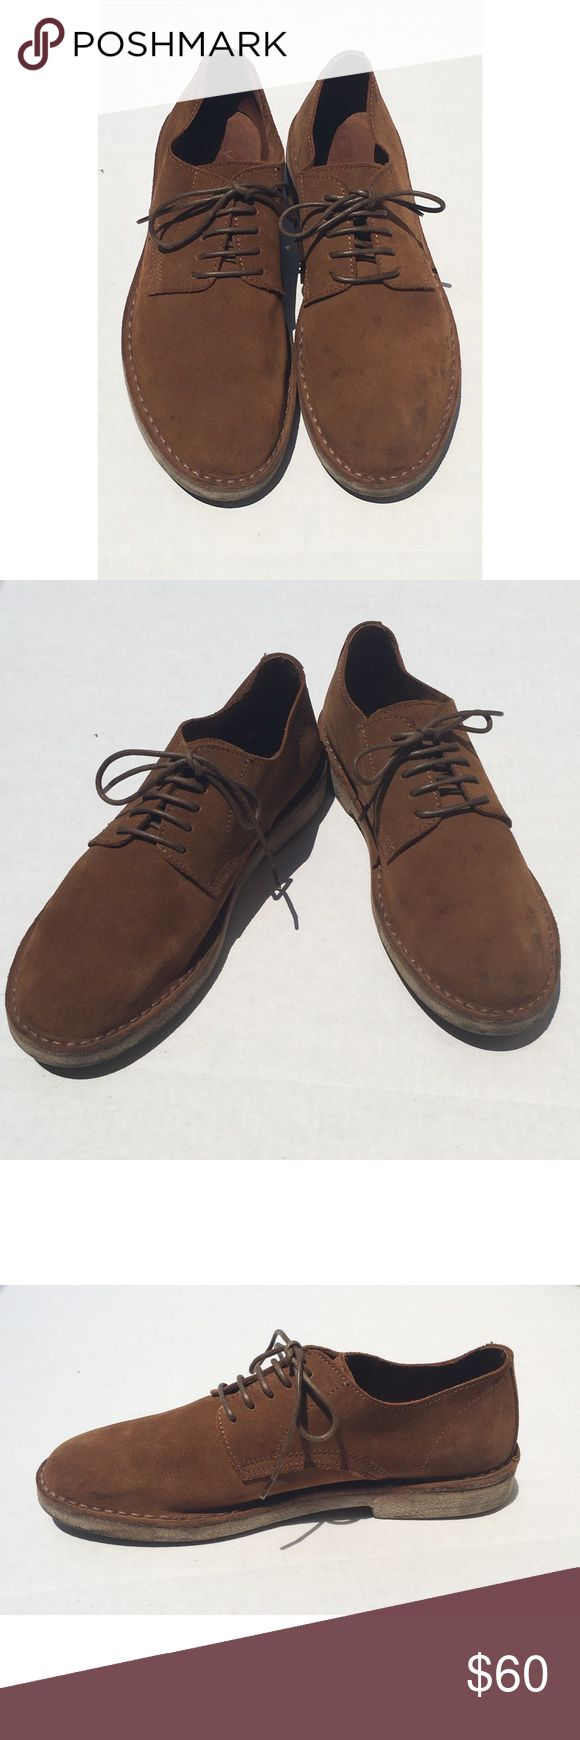 J Crew Sued Leather Men's Shoes Size 9 J Crew Suede Leather men shoes size 9. Dressy, casual very comfortable shoes. These are gently used but in great condition. There are a few spots on the front left shoes as seen in pic, otherwise in very good condition! J. Crew Shoes Oxfords & Derbys